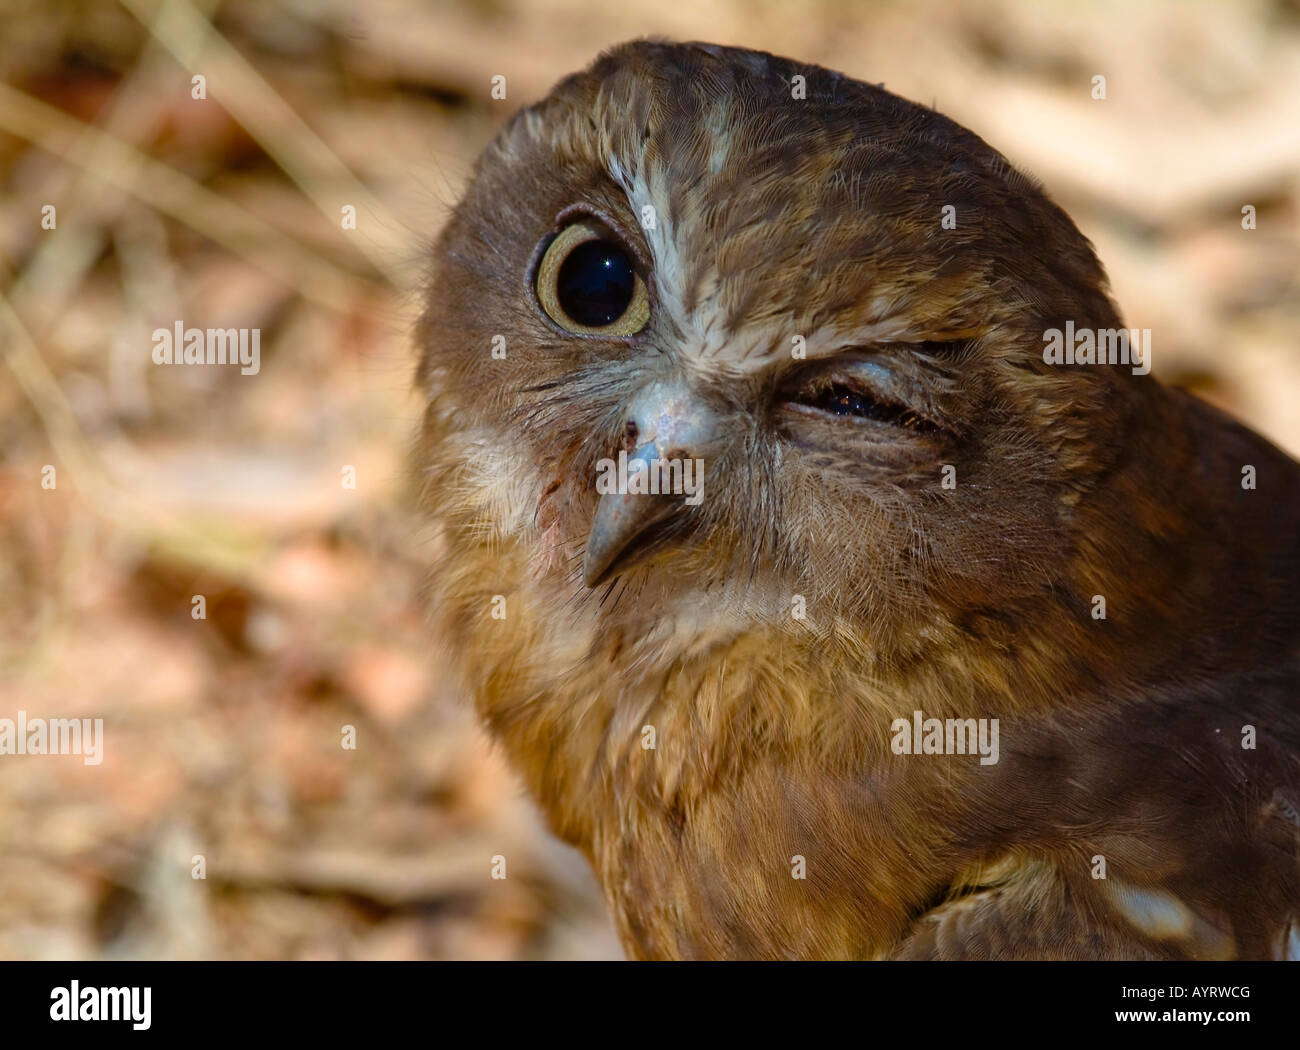 Portrait of a Wood-Owl (Strix) with an eye injury, infection - Stock Image